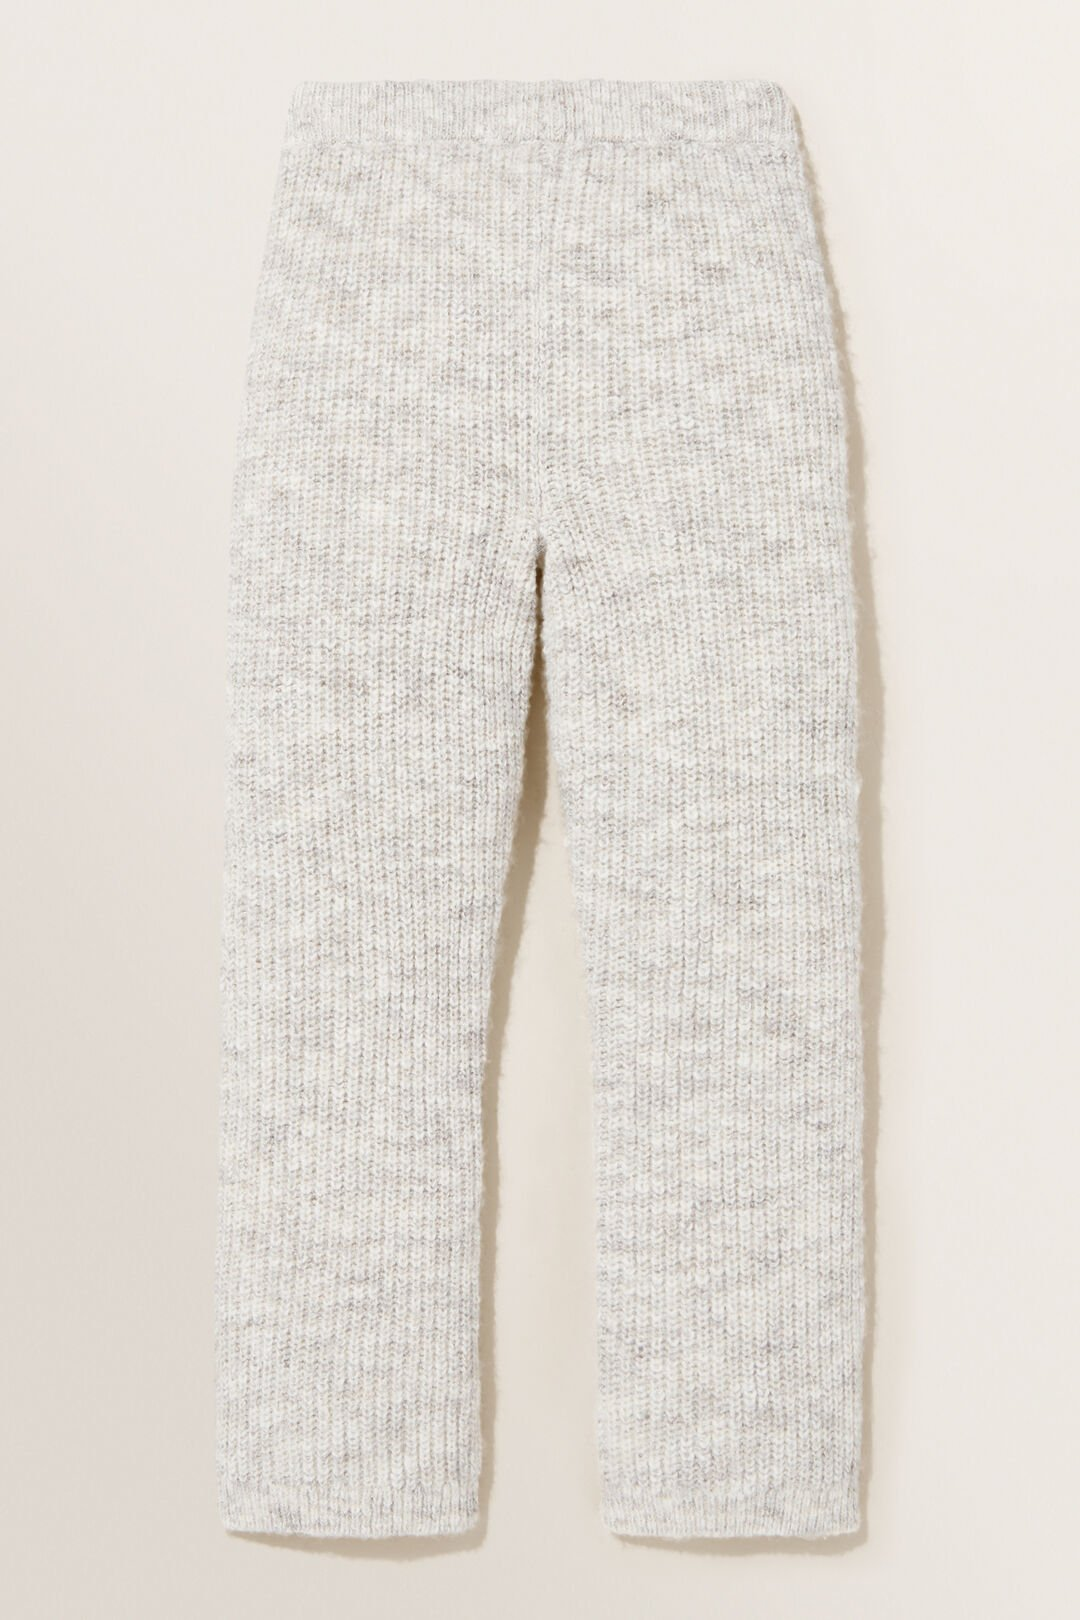 Knit Trousers  OAT MARLE  hi-res